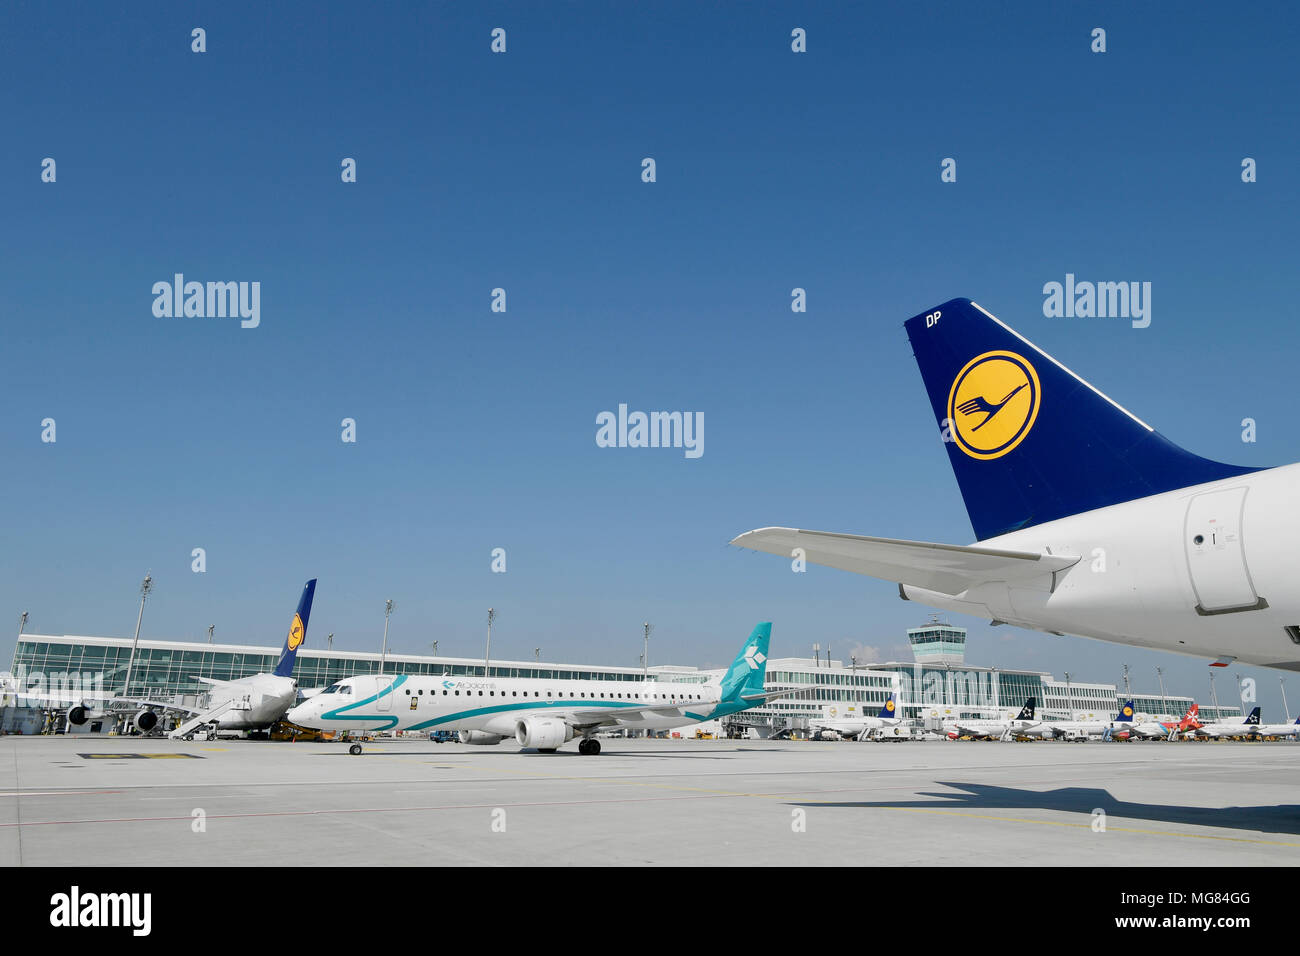 Overview, View, Terminal 2, Satellit, Lufthansa, Air Dolomiti, Roll Out, Line Up, Aircraft, Airplane, Plane, Airport Munich, MUC, Germany, - Stock Image